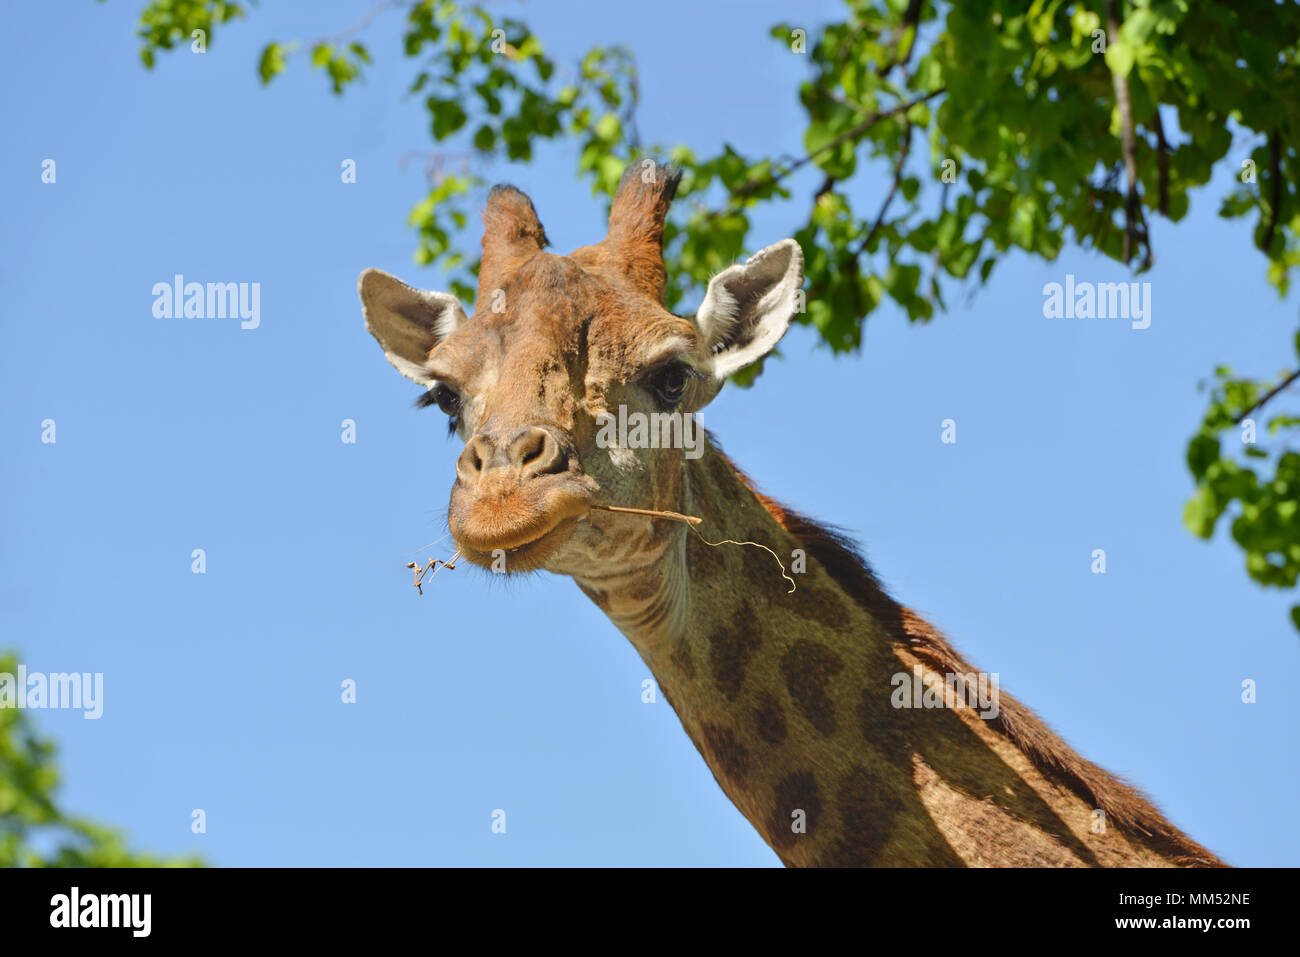 Giraffe (Giraffa camelopardalis giraffa). Portrait on blue sky background - Stock Image